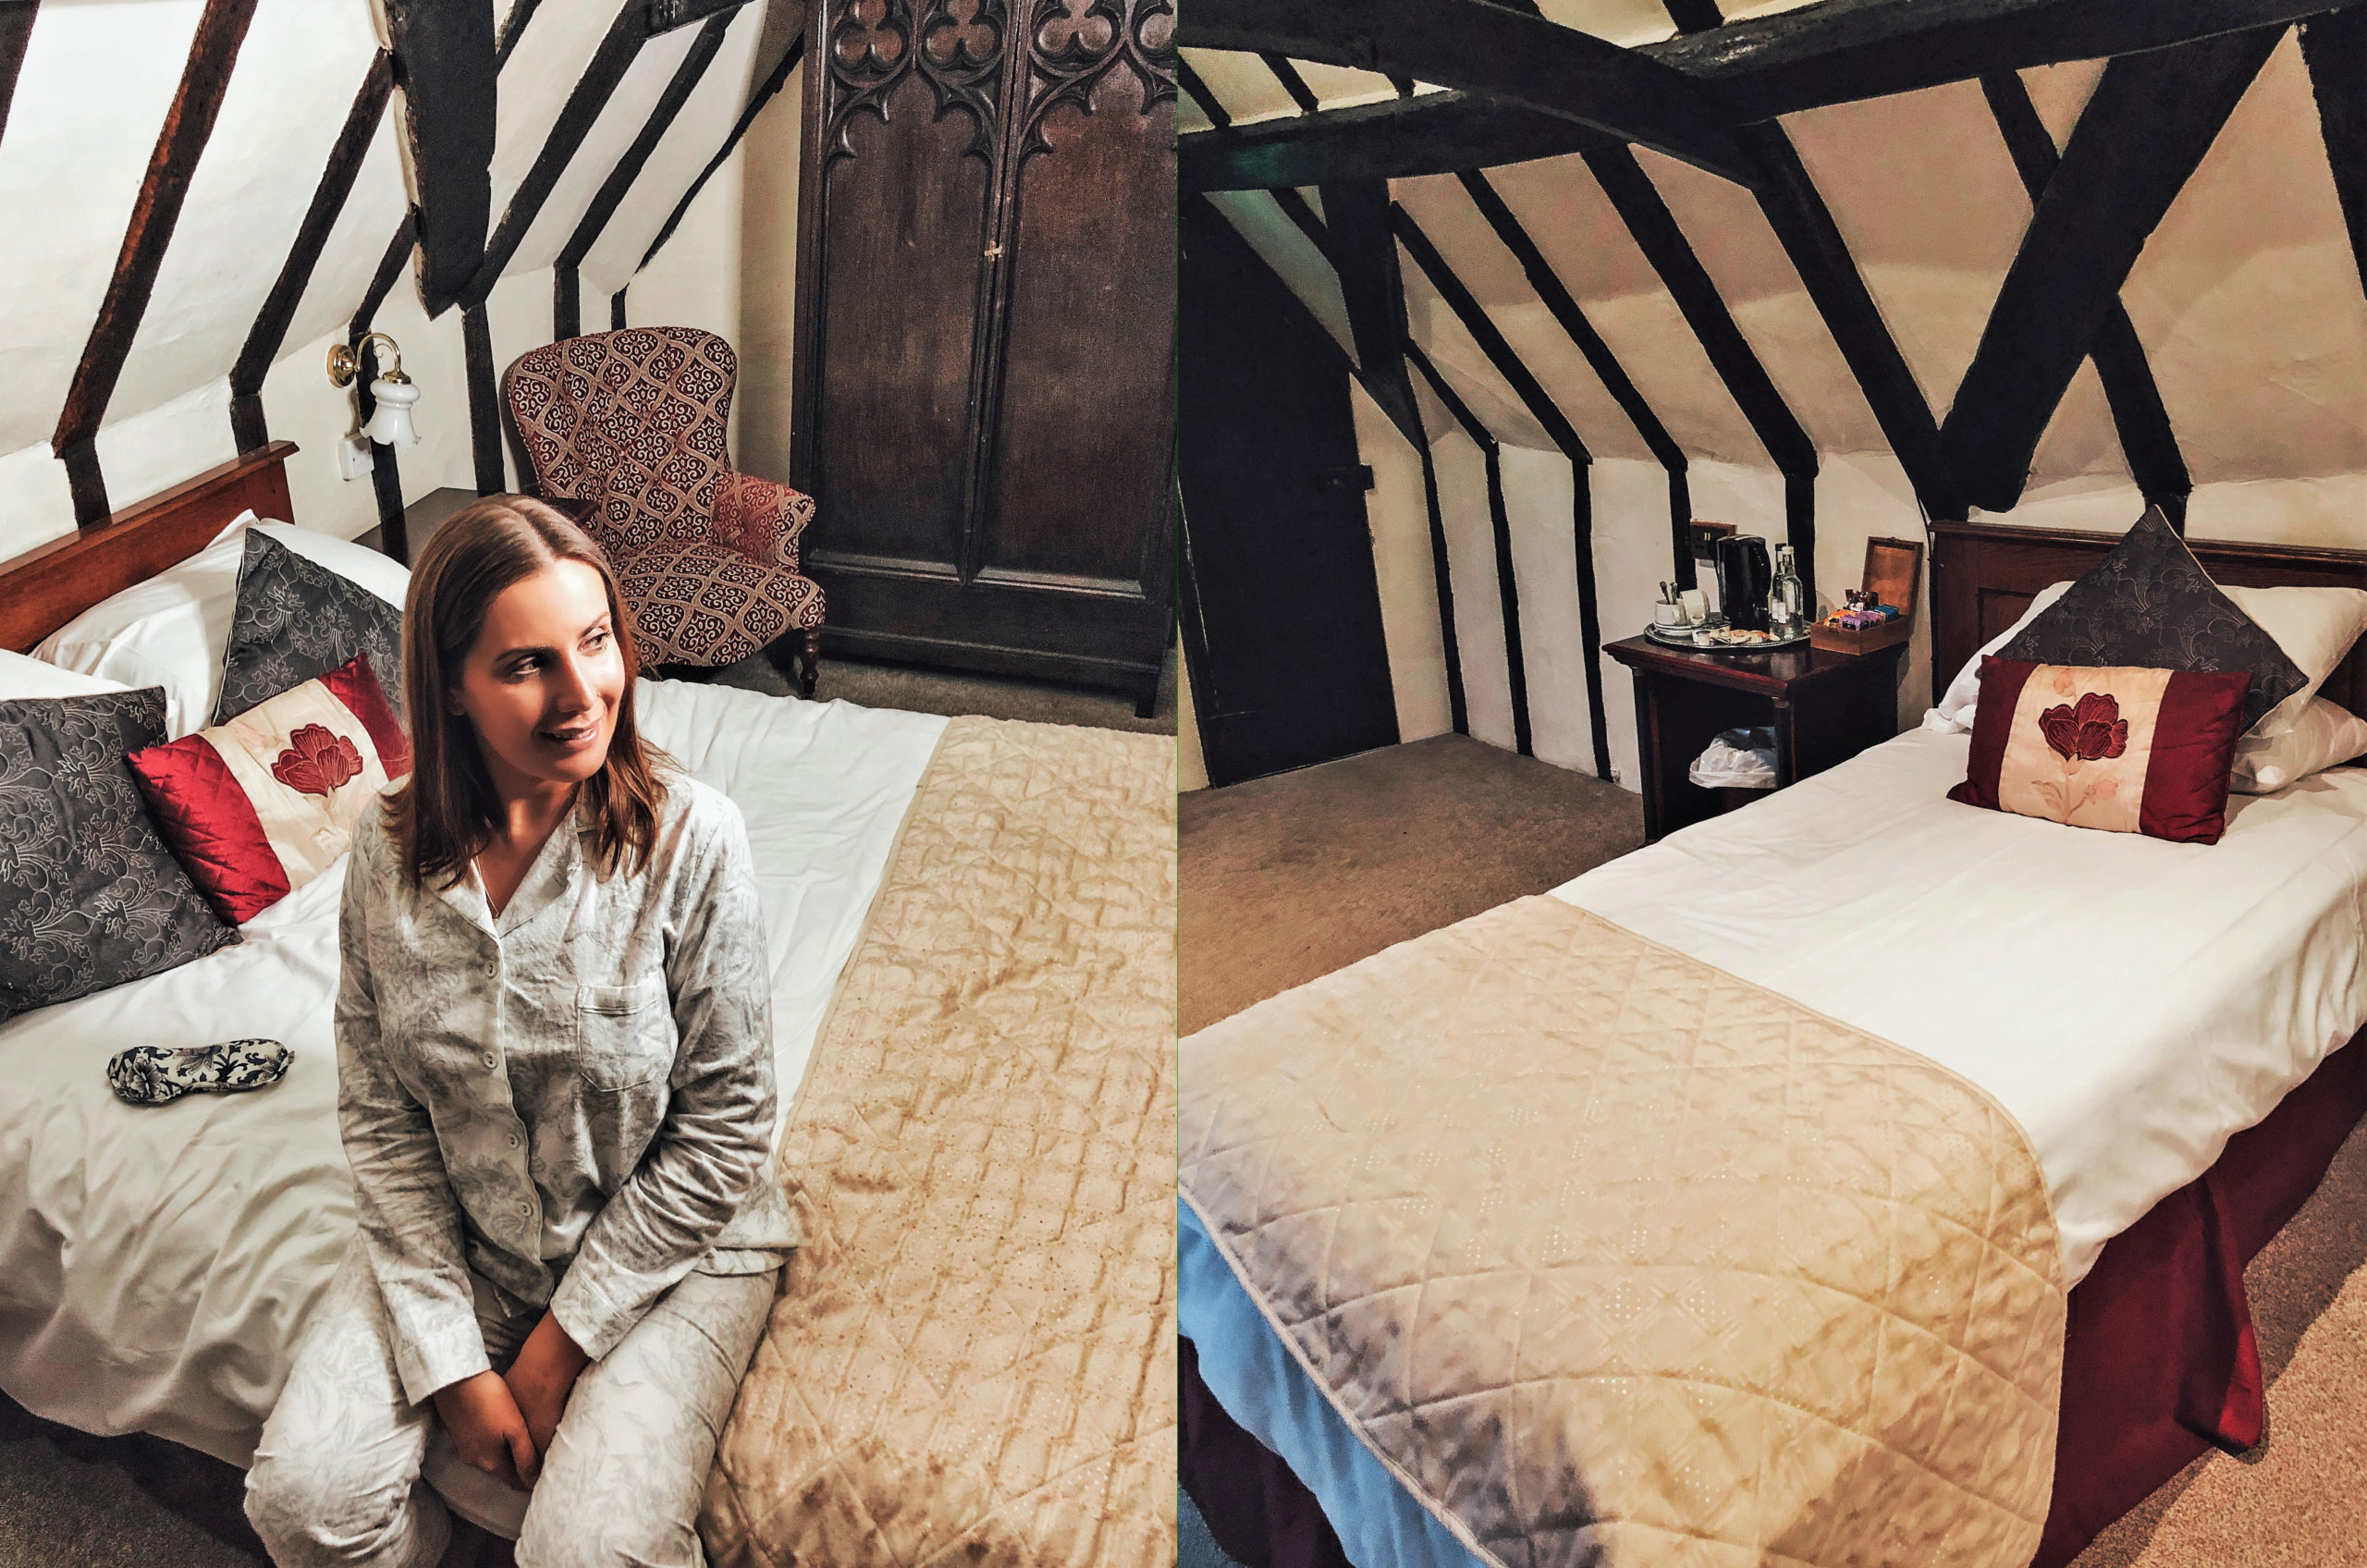 I spent the night at the most haunted hotel in the UK - check out these bone-chilling ghost stories from the Mermaid Inn!| haunted hotels UK | haunted locations | paranormal | places to see in the UK | quirky hotels | UK hotels | UK travel | unique hotels | where to stay in the UK | UK weekend ideas | places to see near London | haunted England | ghost stories | ghost sightings | unusual places to stay in the UK | Rye | Mermaid Street | spooky | trips from London | #haunted #travel #ukhotels